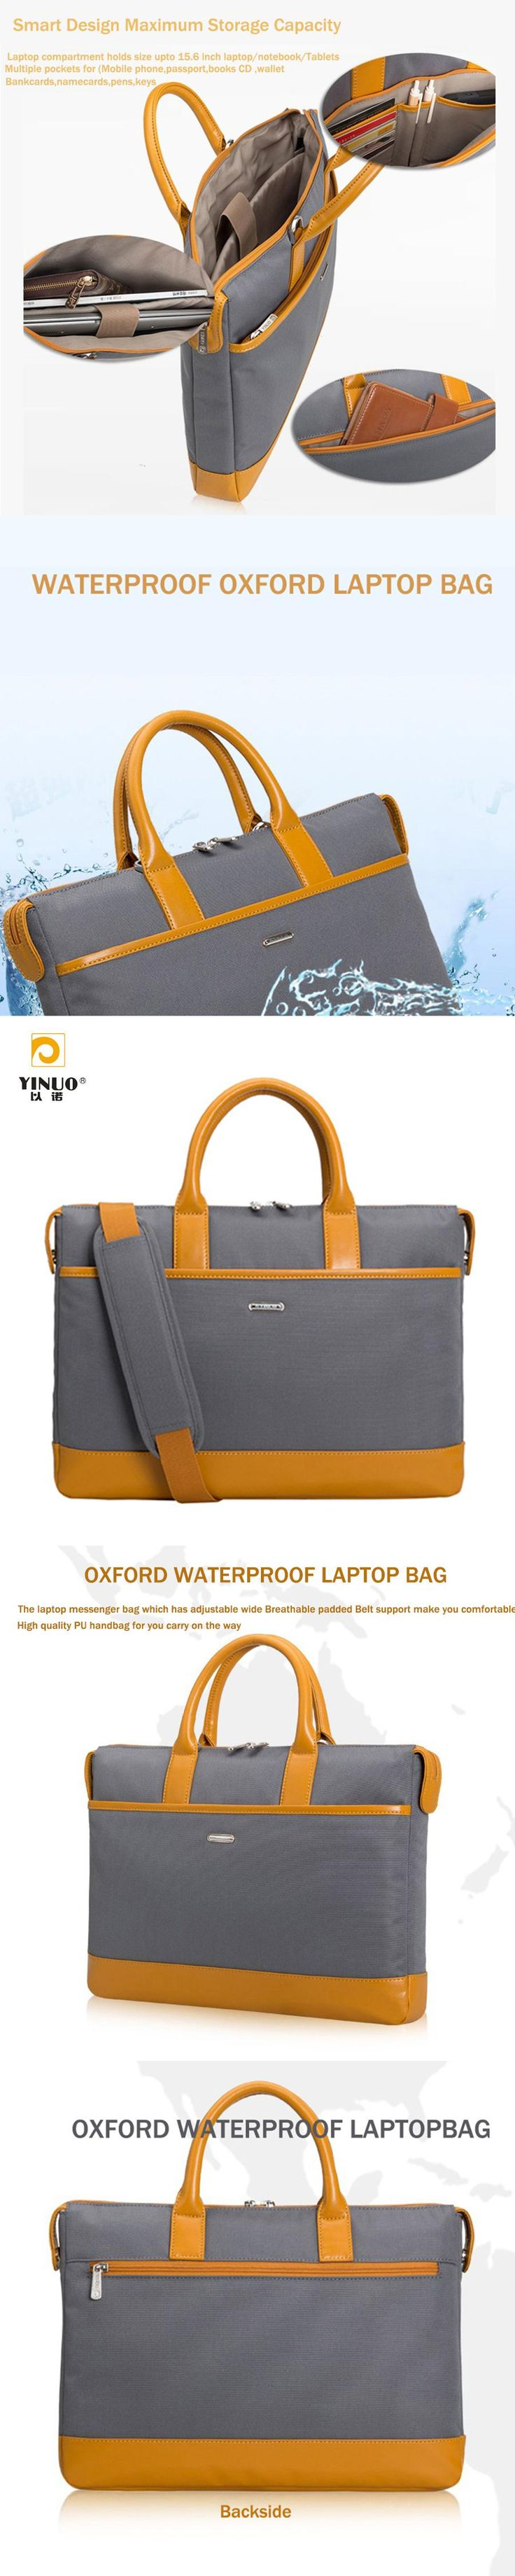 """YINUO 13.3"""" 14"""" 15.6"""" Oxford Waterproof Strap Bag/Notebook Laptop Sleeve Case Cover Briefcase Carrying Bag for Apple MacBook"""